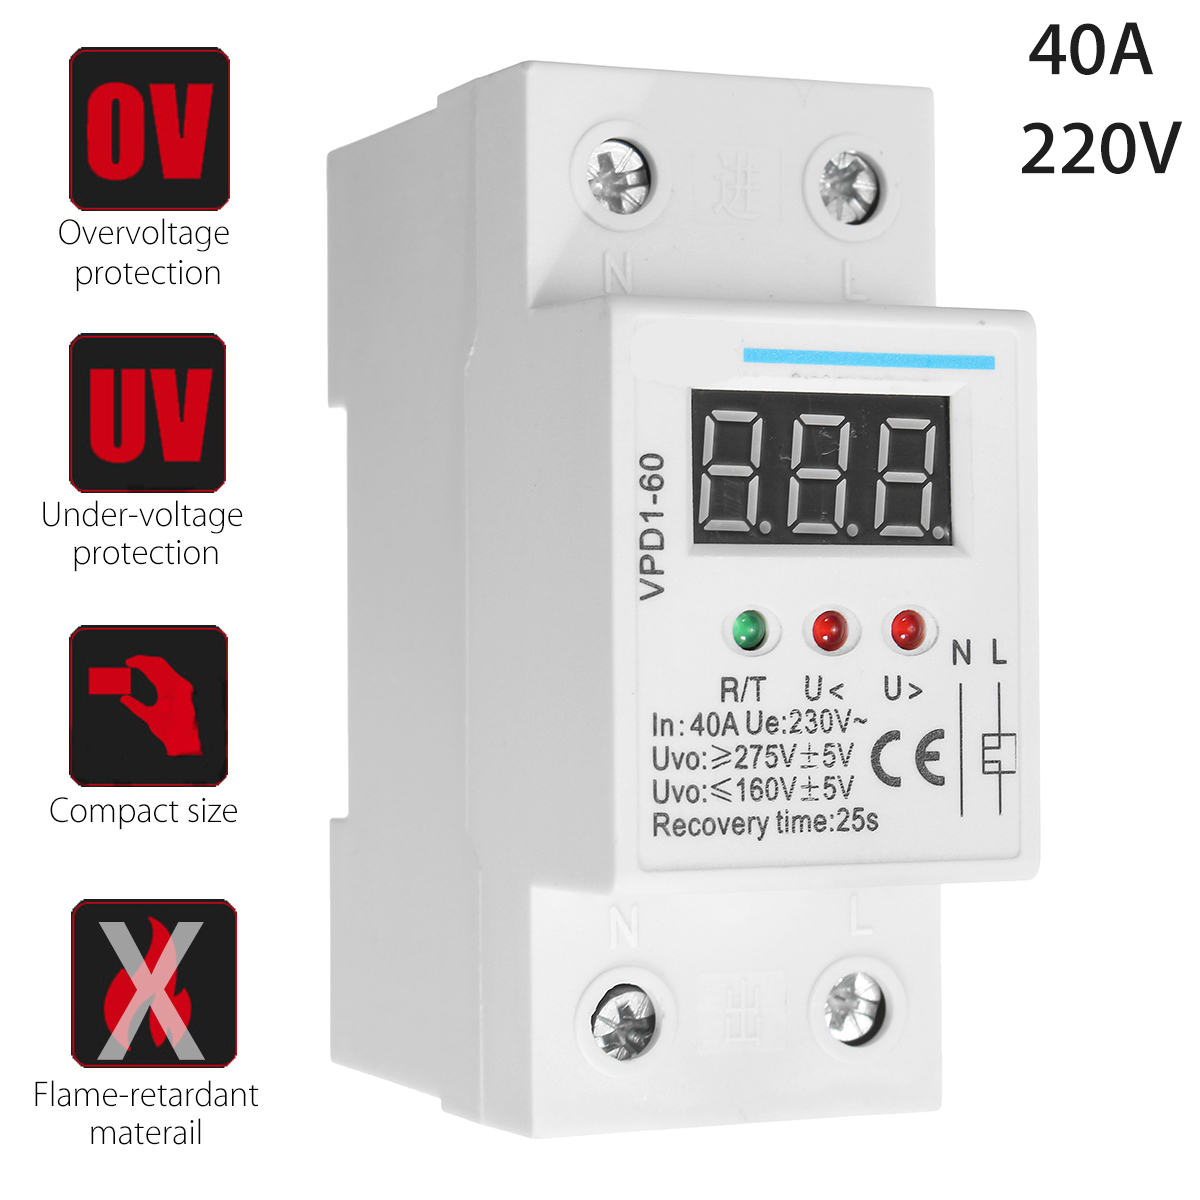 40A 220V Over And Under Voltage Protection Protective Device Automatic Reconnect Recovery For Home Improvement efficient recovery mechanisms over igp and manet networks